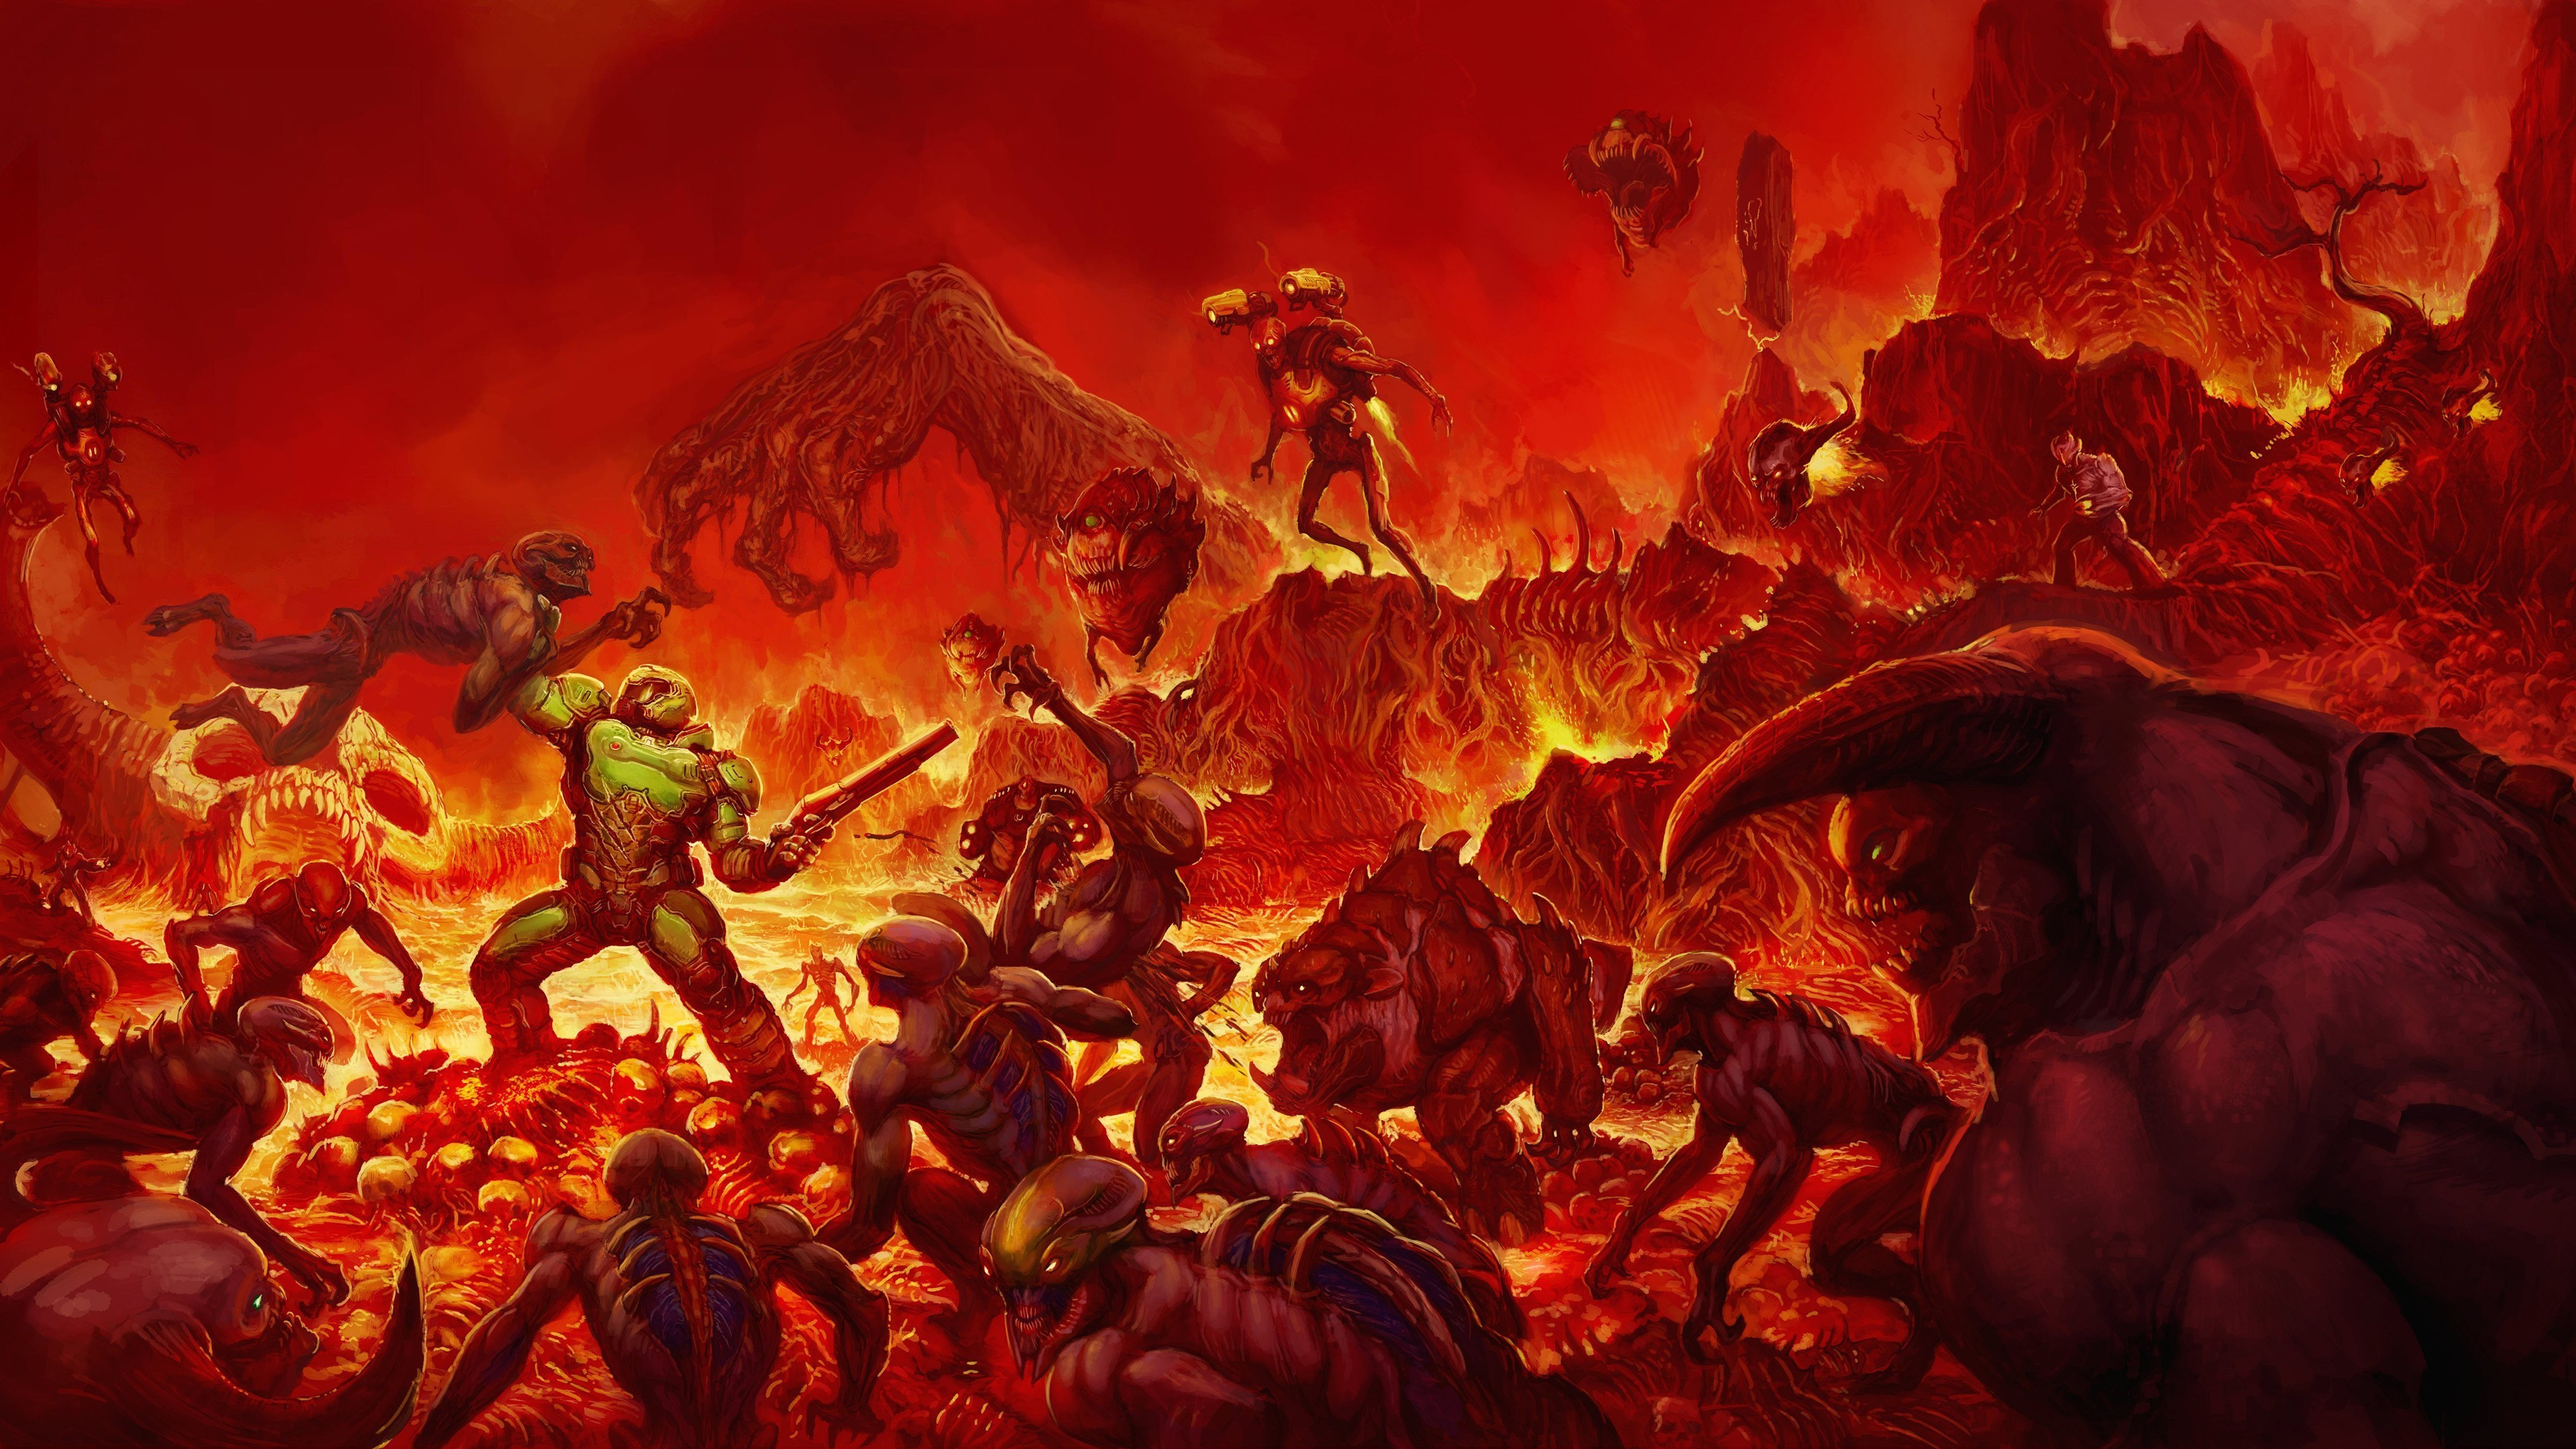 Doom Background Download Free Awesome High Resolution